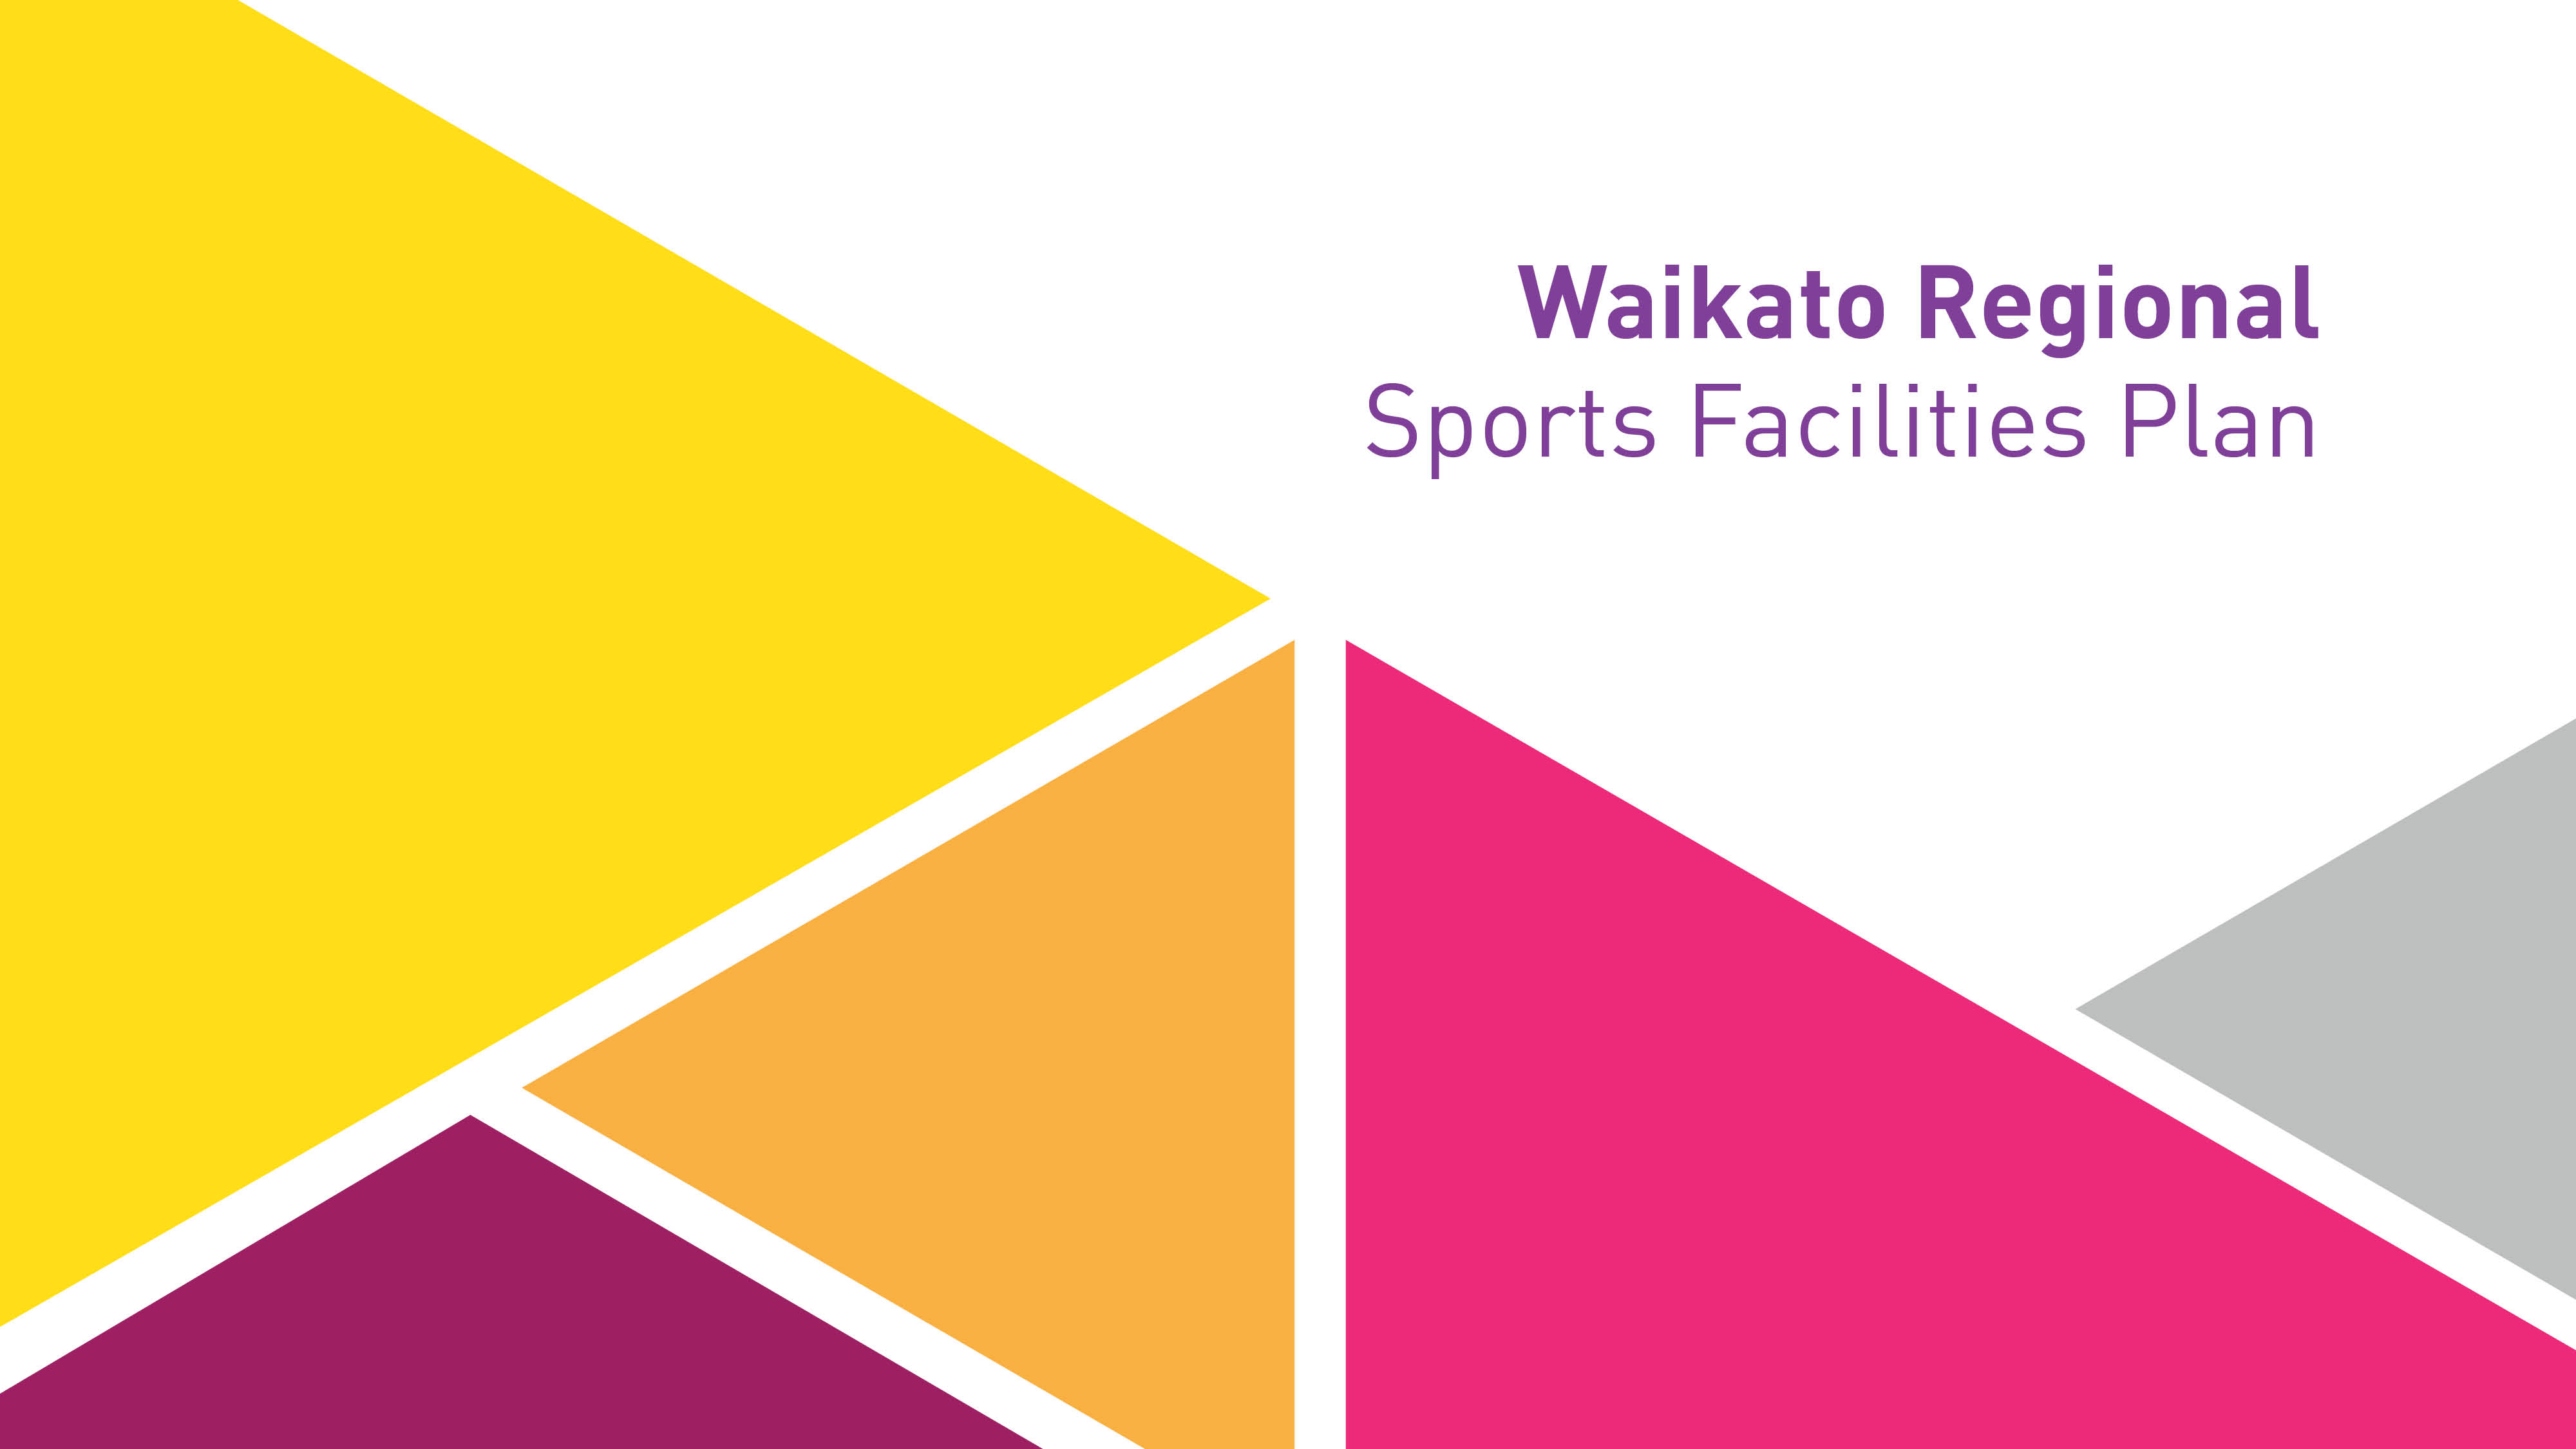 Waikato Regional Sports Facilities Plan - 2020 Review